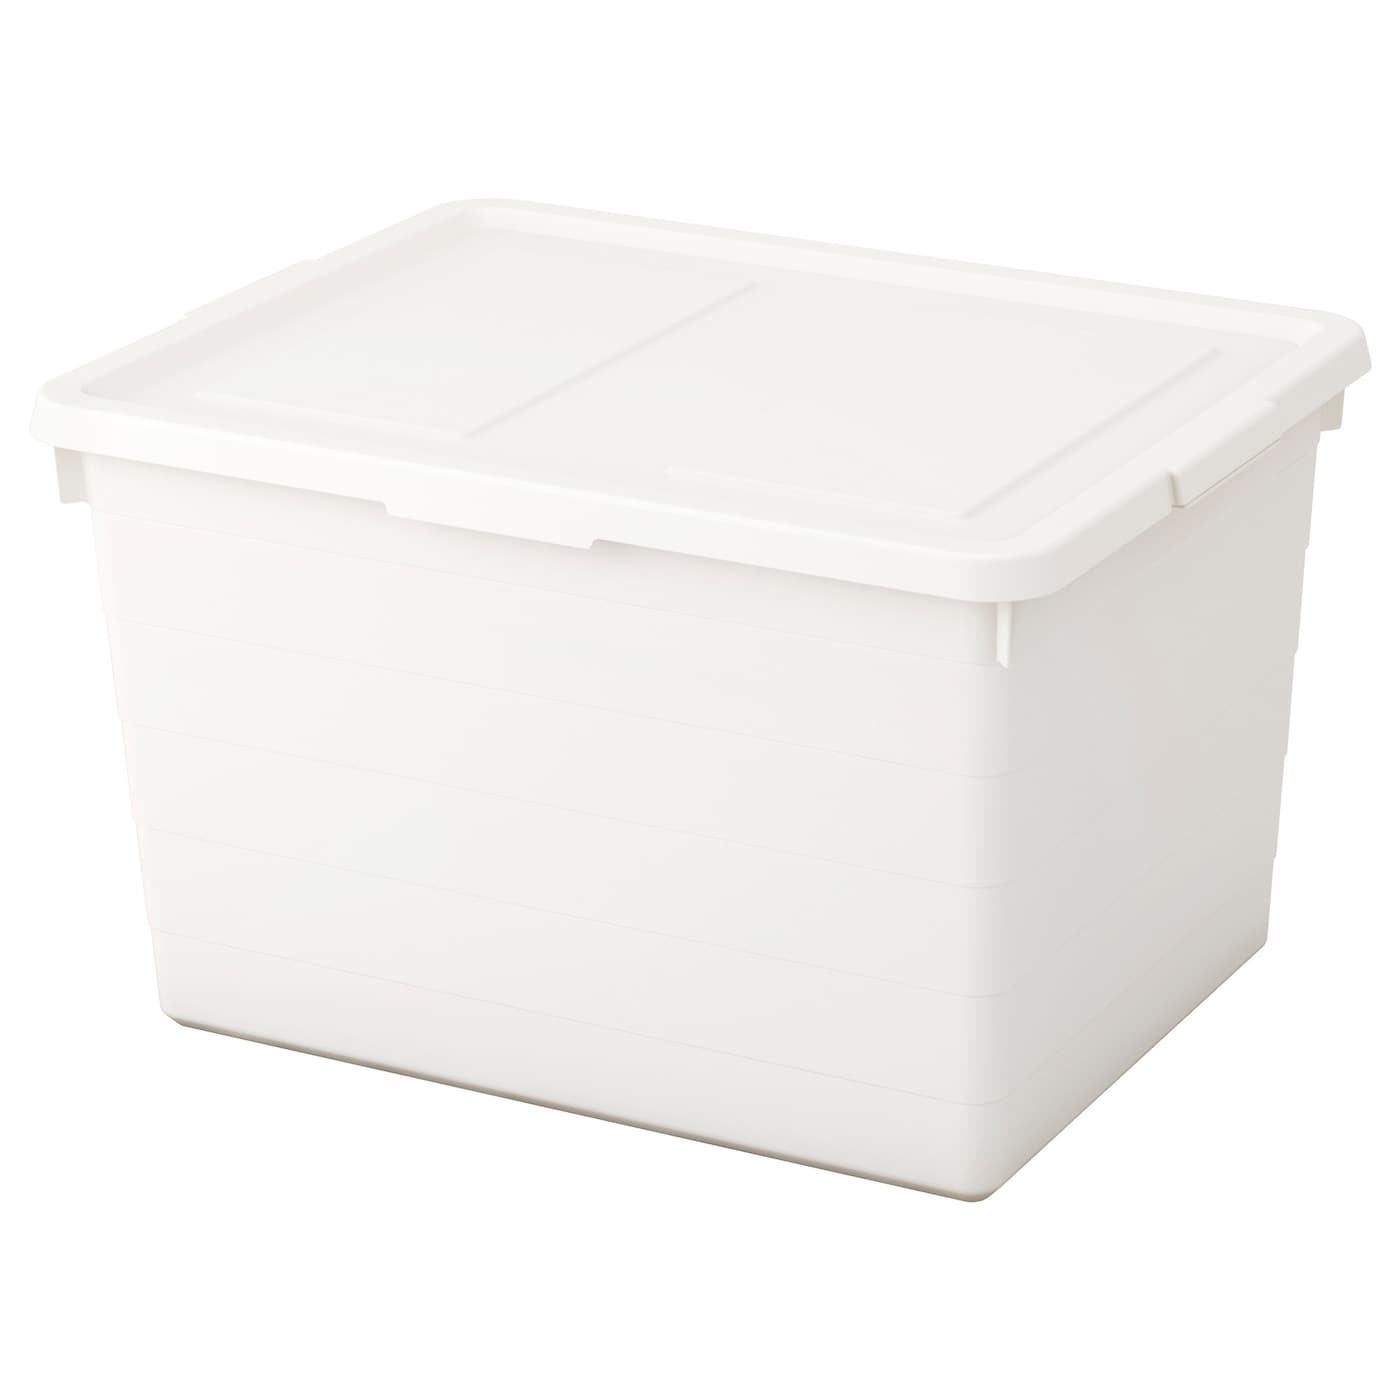 IKEA SOCKERBIT box with lid